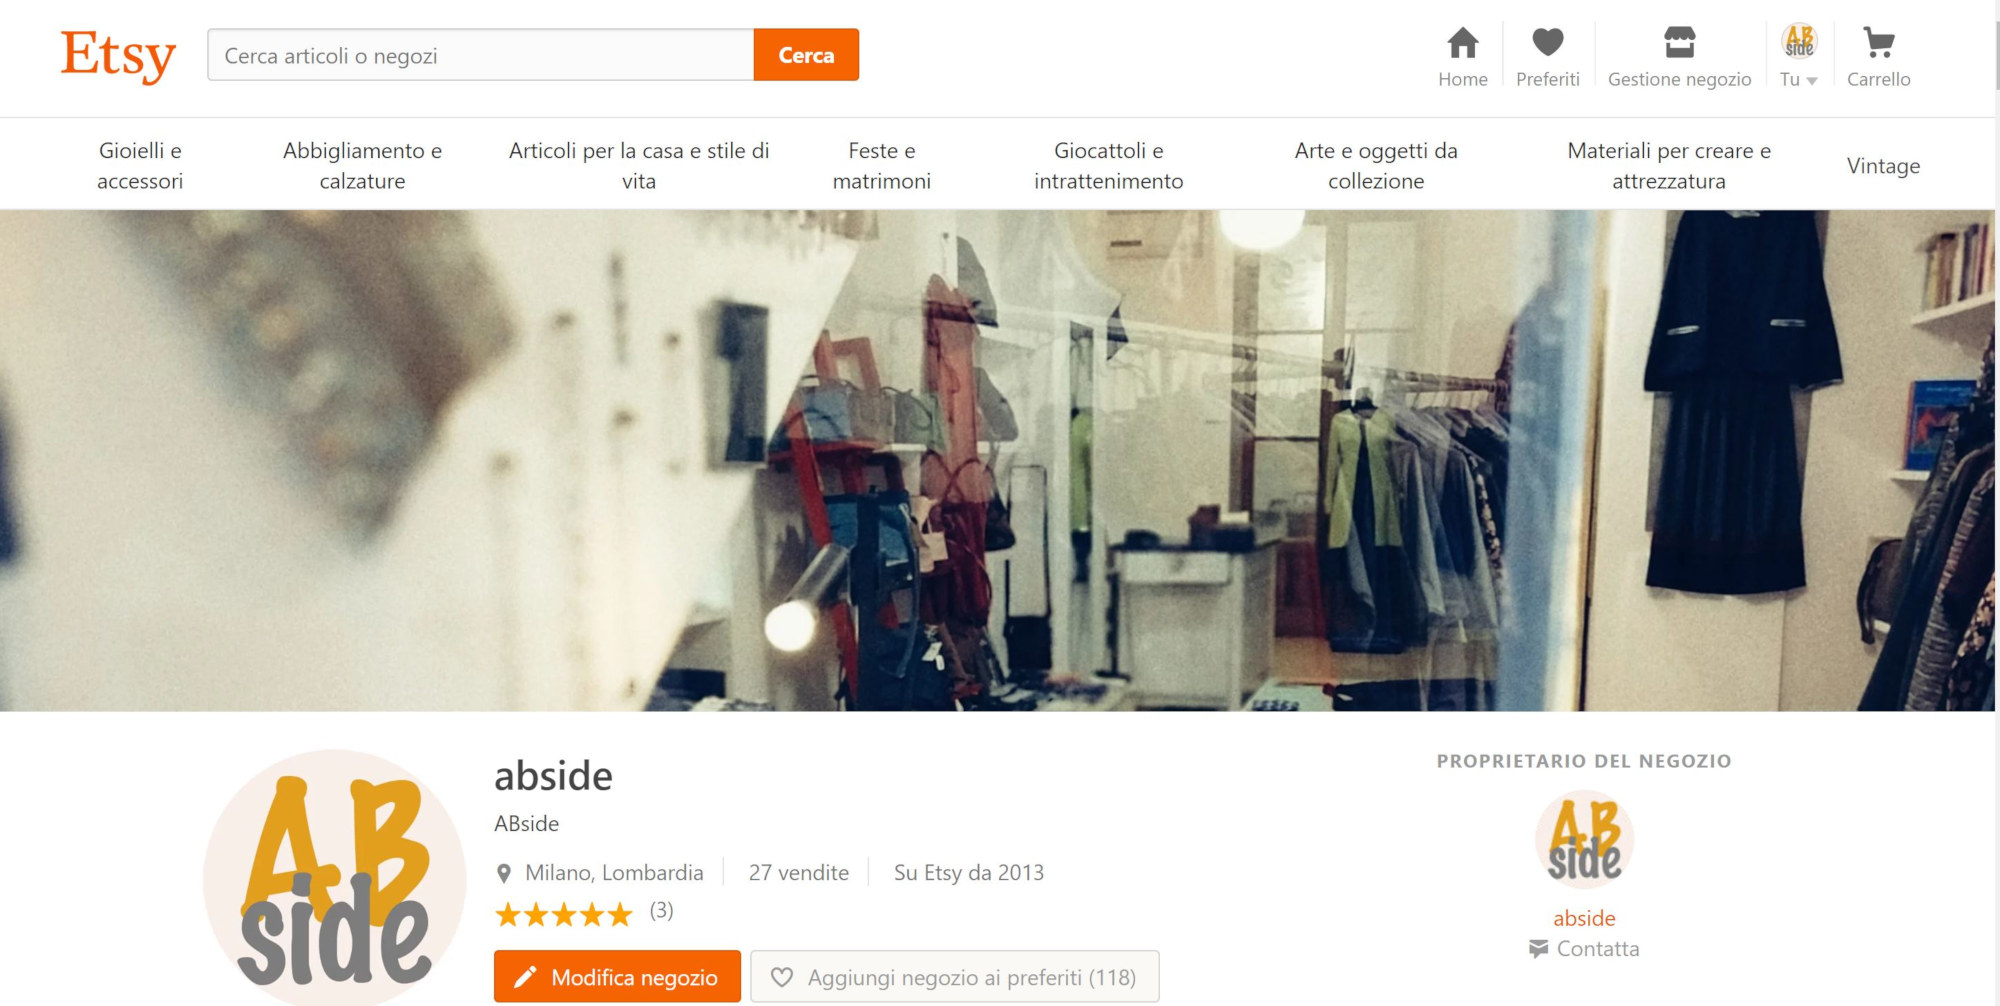 abside shop on etsy